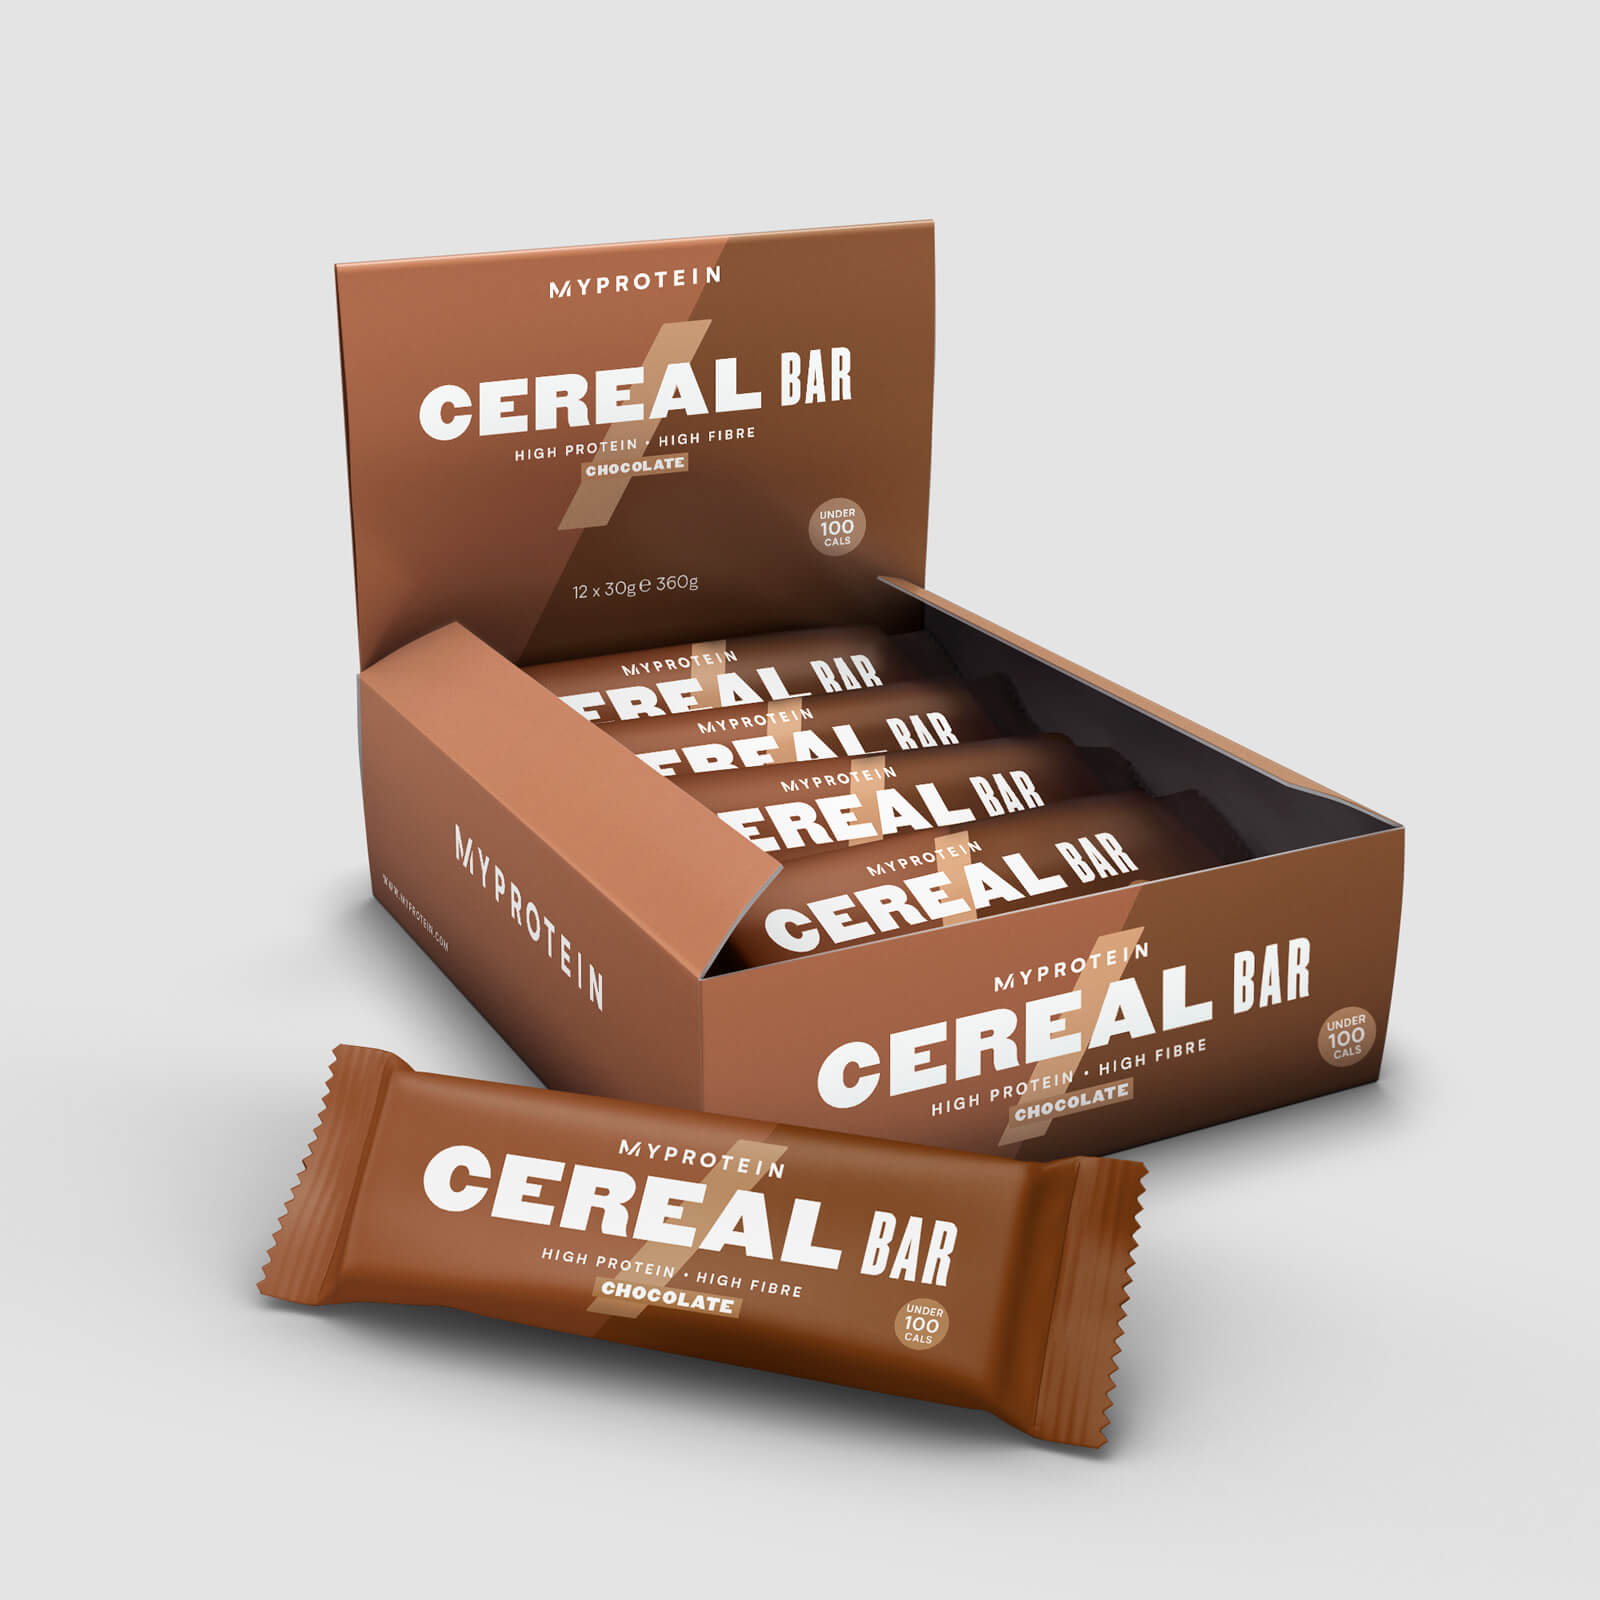 Myprotein Cereal Bar - 12 x 30g - Double Chocolate